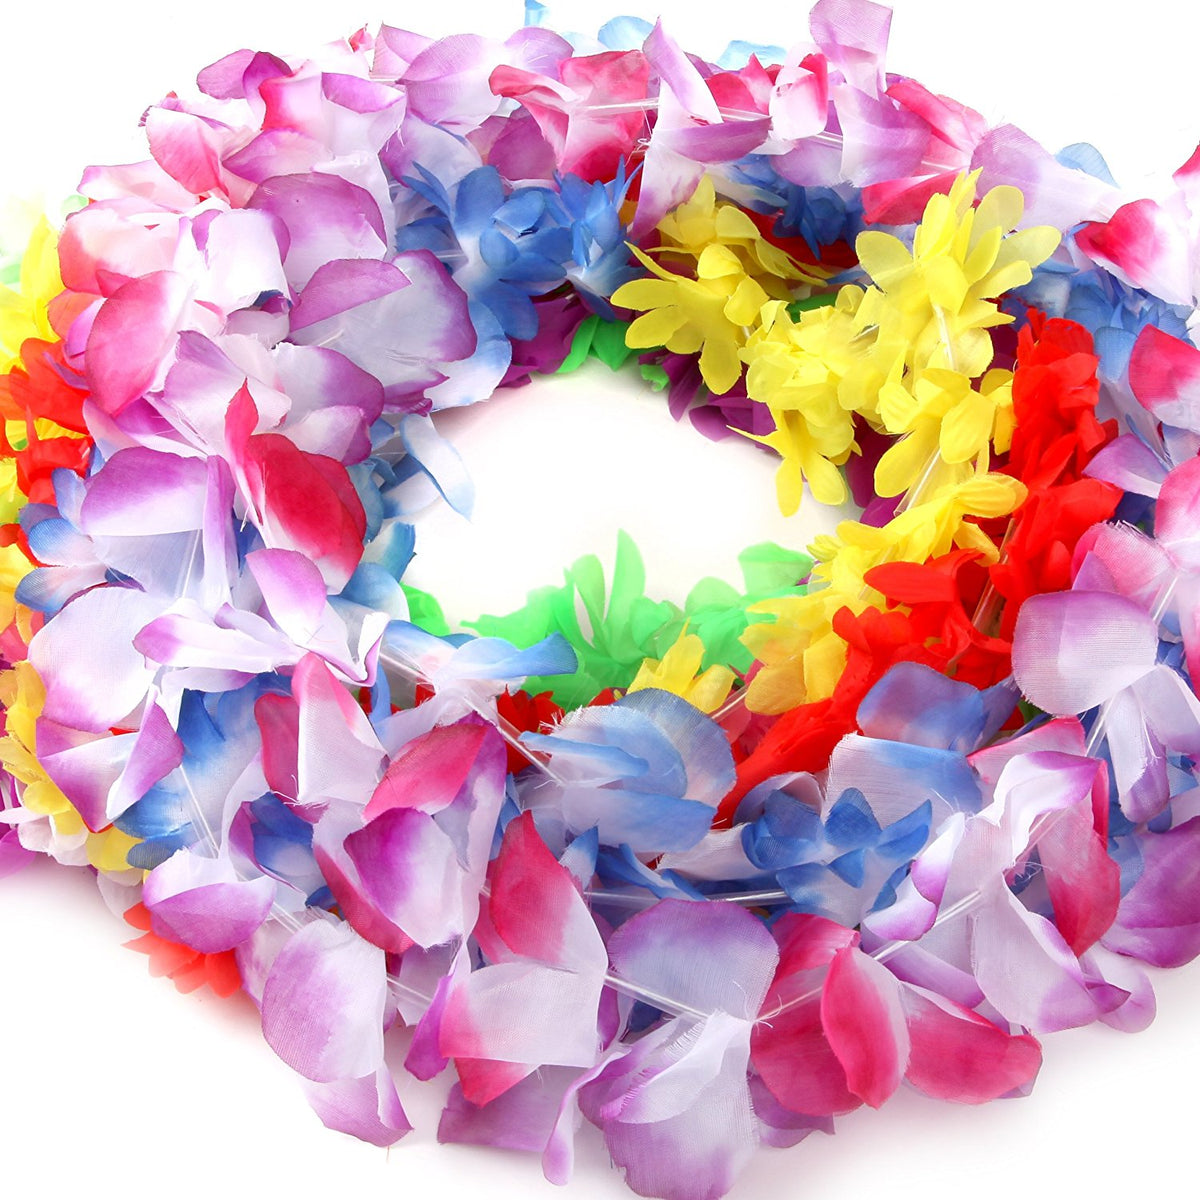 Silk hawaiian leis necklace for luau party flower lei garland with silk hawaiian leis necklace for luau party flower lei garland with mutli color vibrant izmirmasajfo